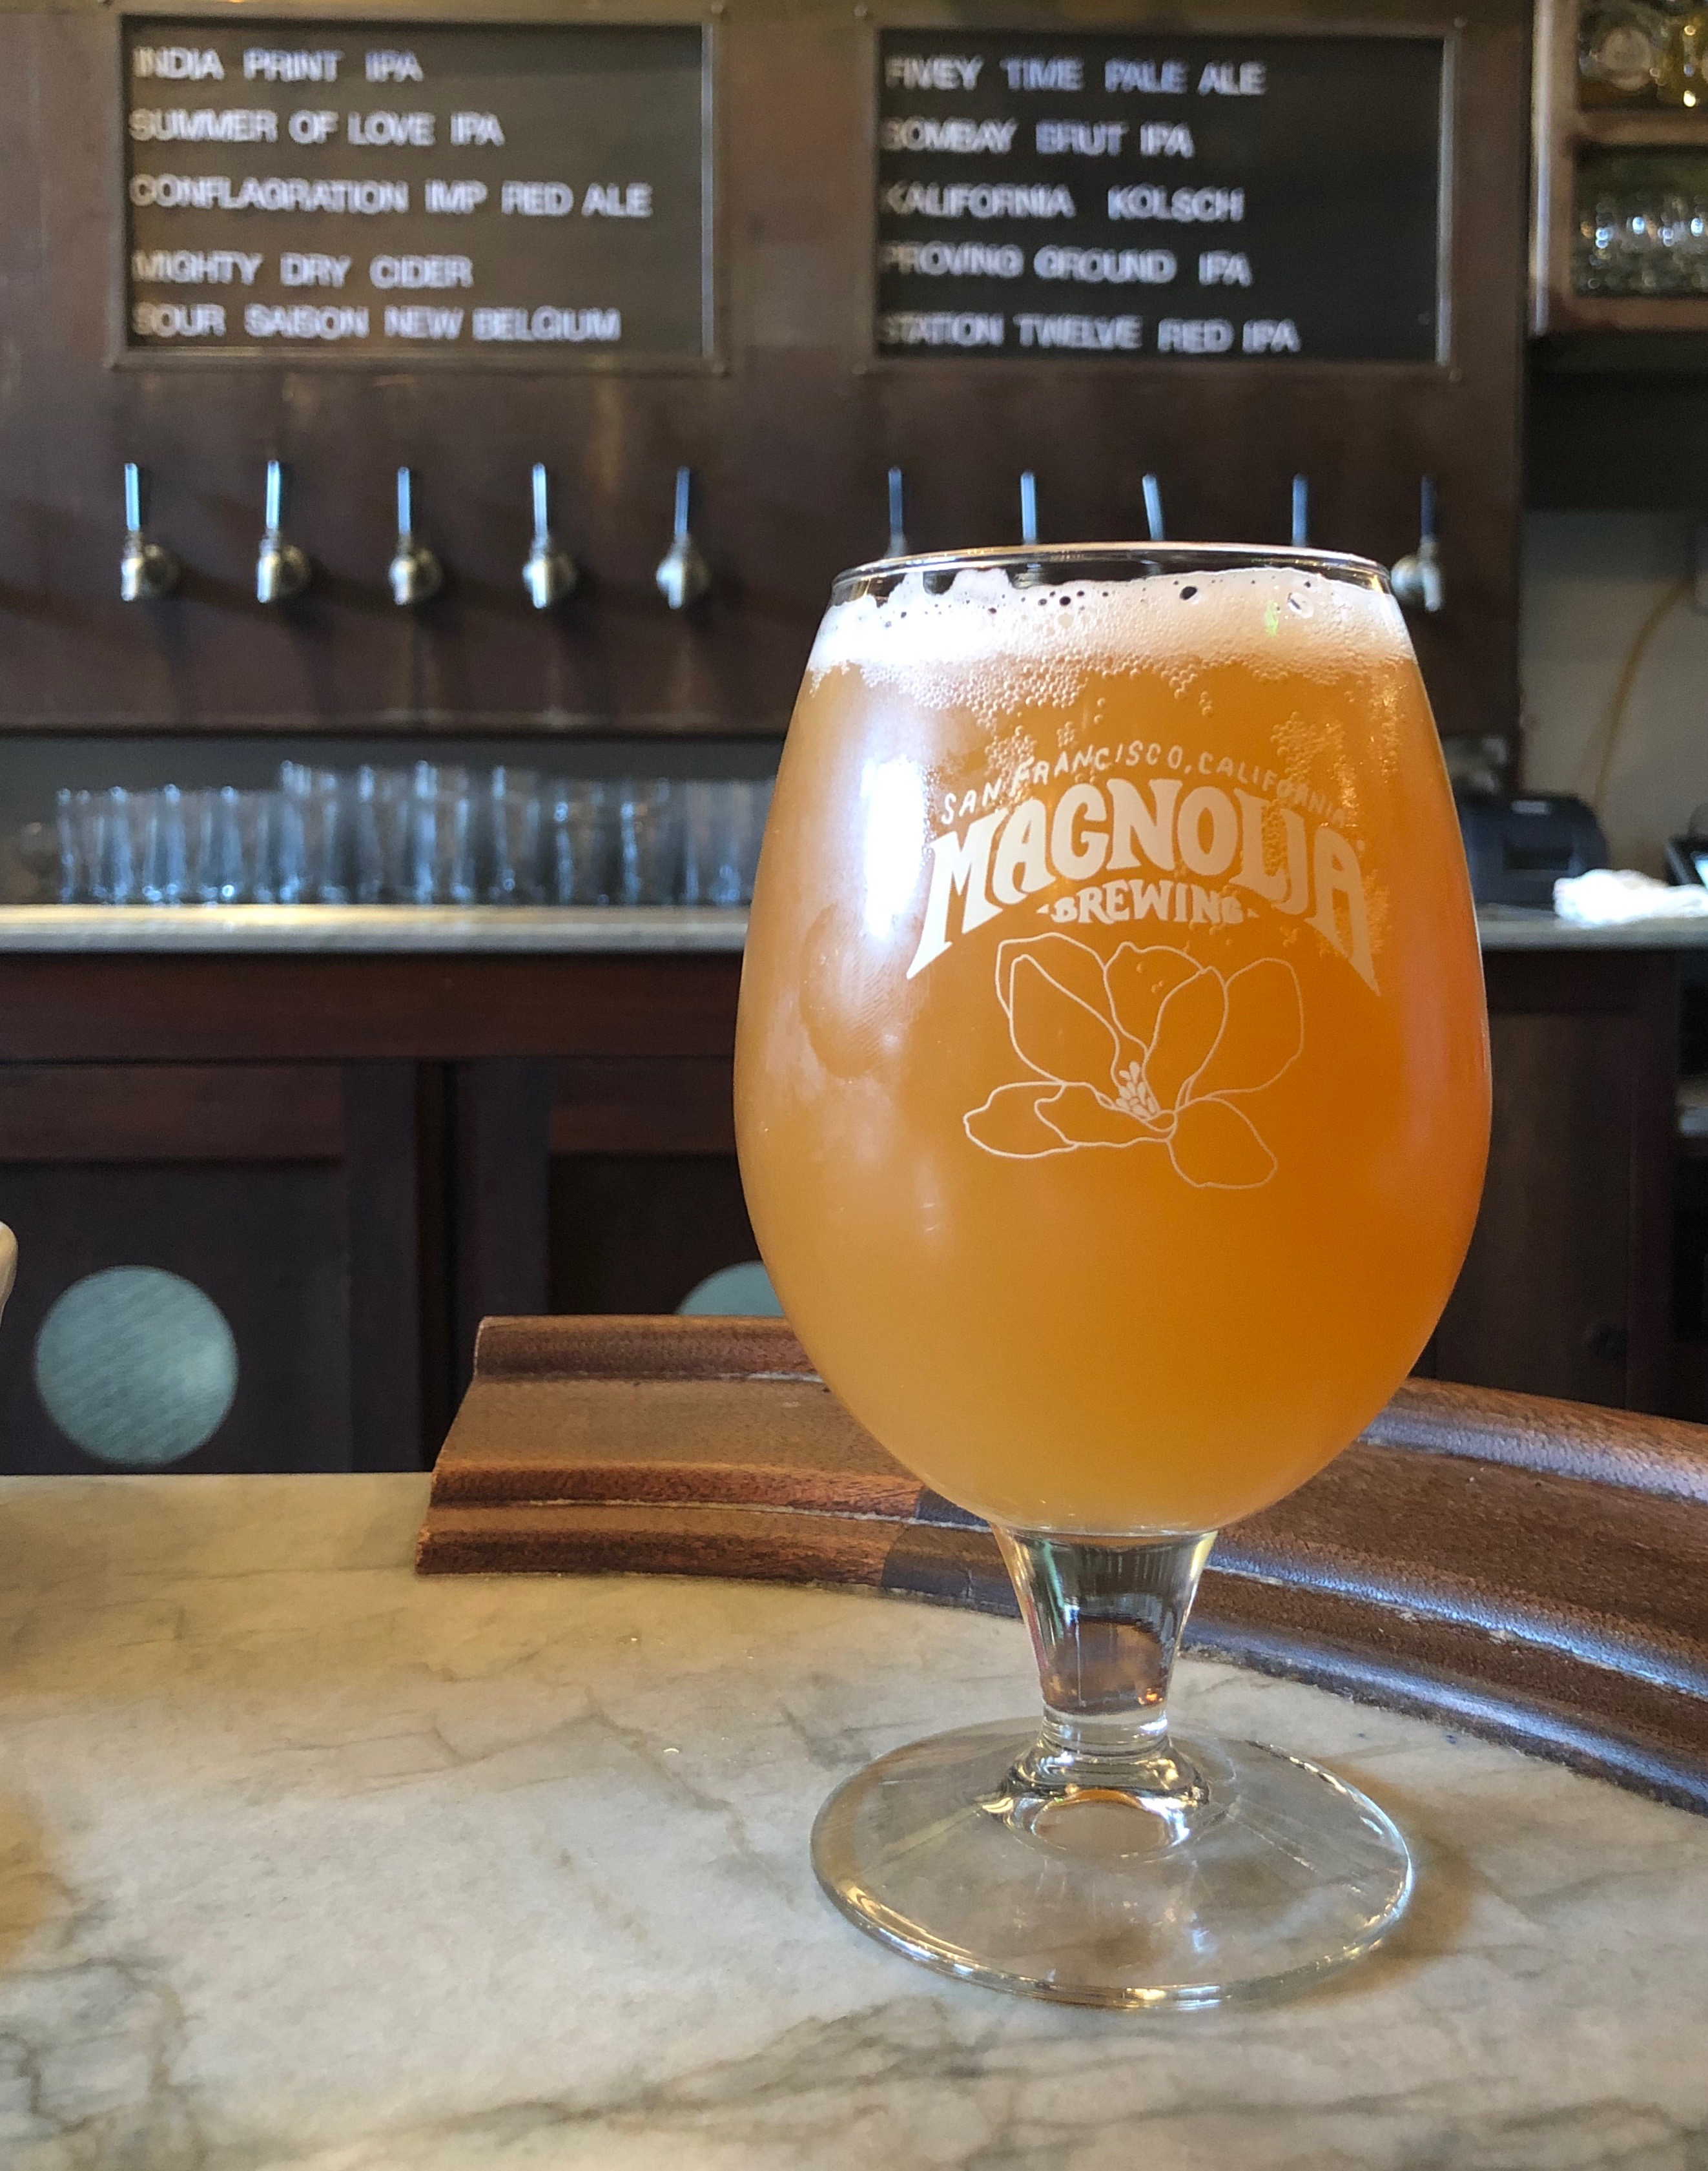 Bombay Brut IPA from Magnolia Brewing that was brewed by Dick Cantwell.